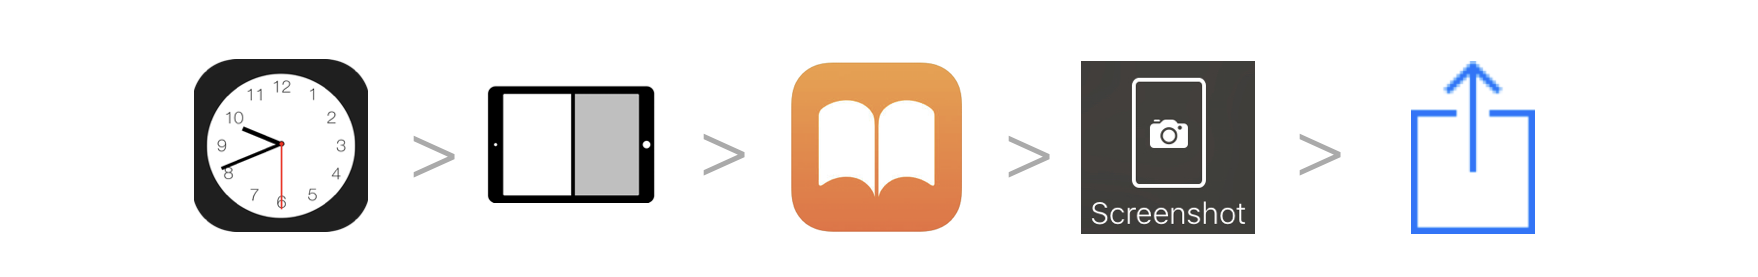 Flow of apps and tools. Clock, split screen, iBooks, screenshot, share